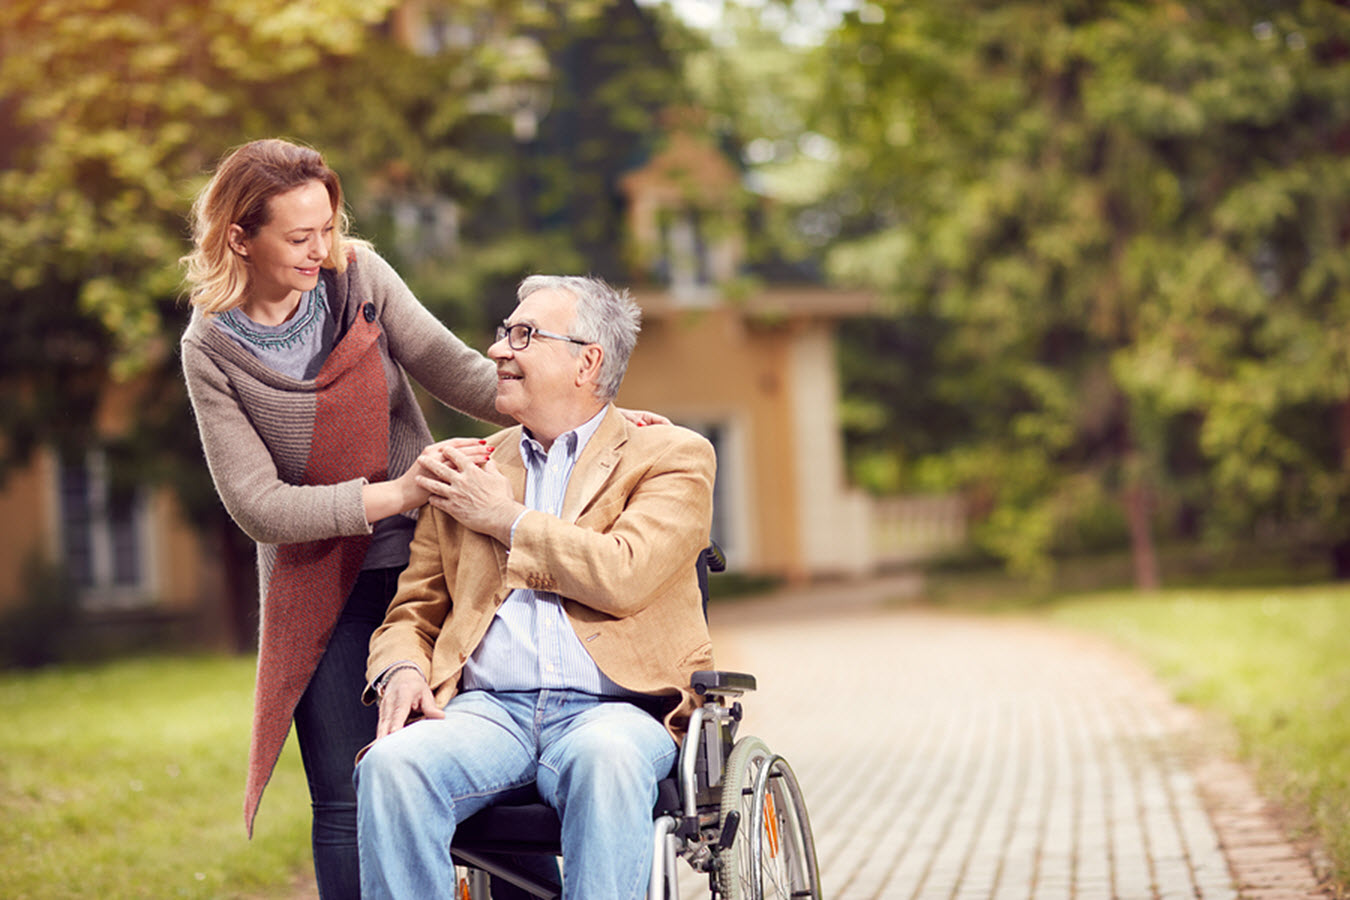 Home Care Services in Peoria AZ: Weight Affects MS Symptoms